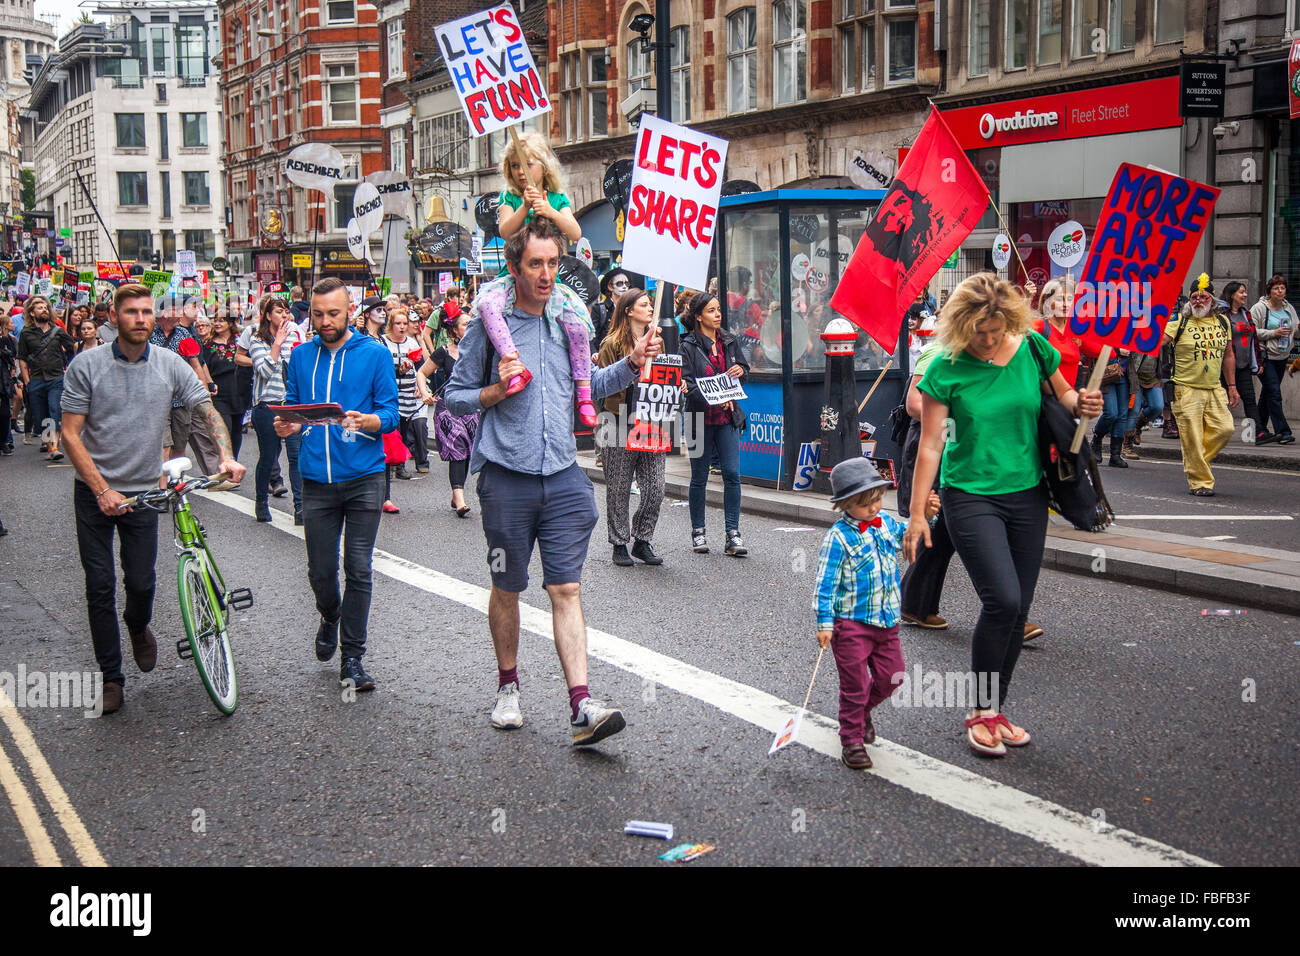 Anti-Austerity Protesters June 2015 London, UK - Stock Image